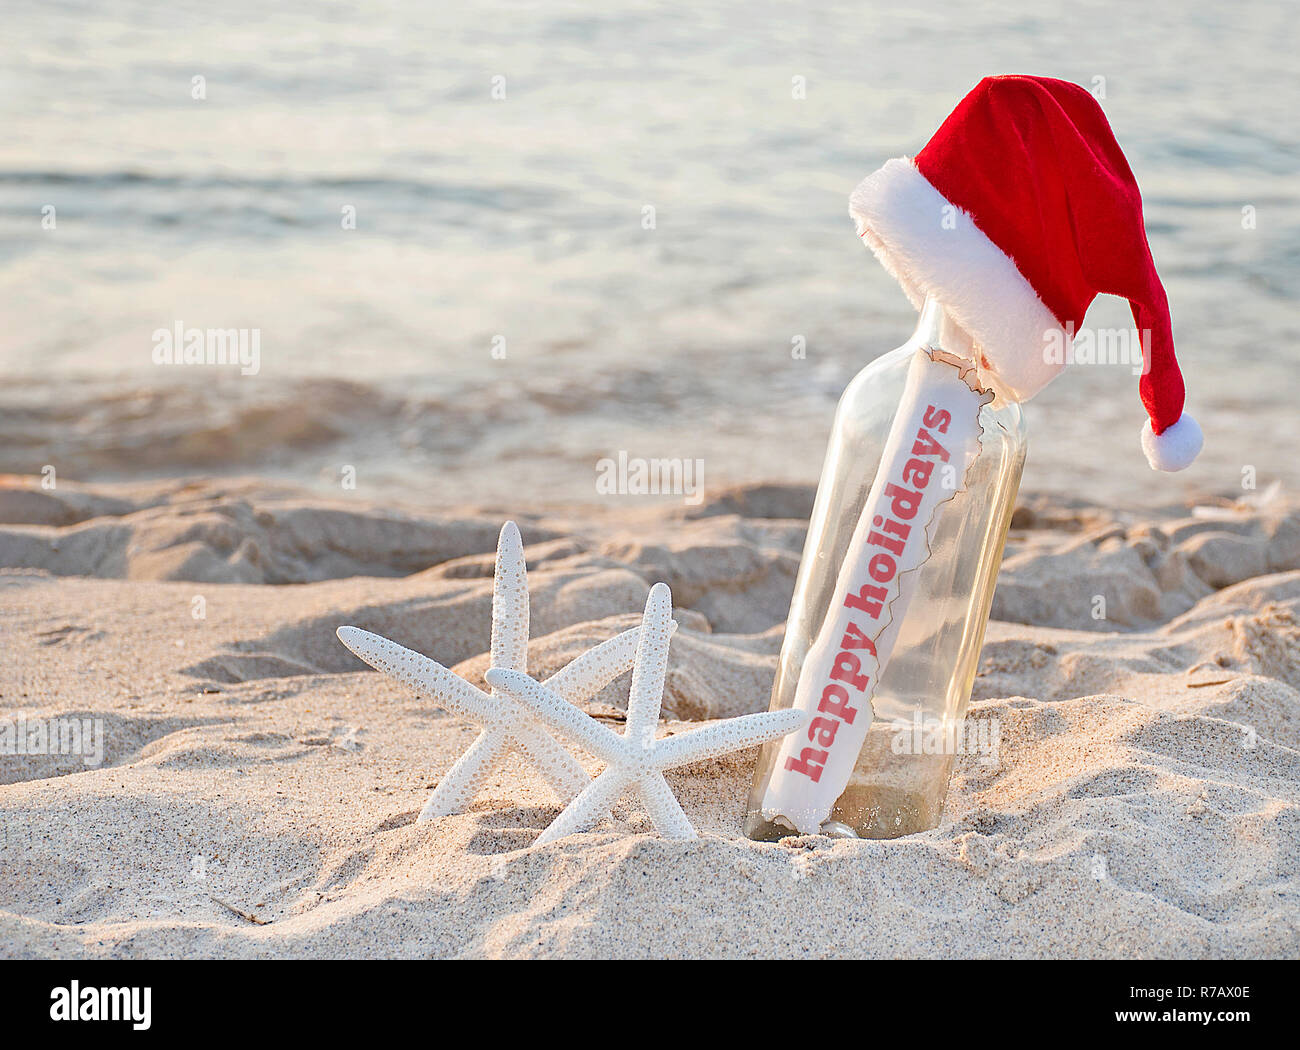 e5c3e378 Santa hat on message in a bottle with pair of white starfish in beach sand  and